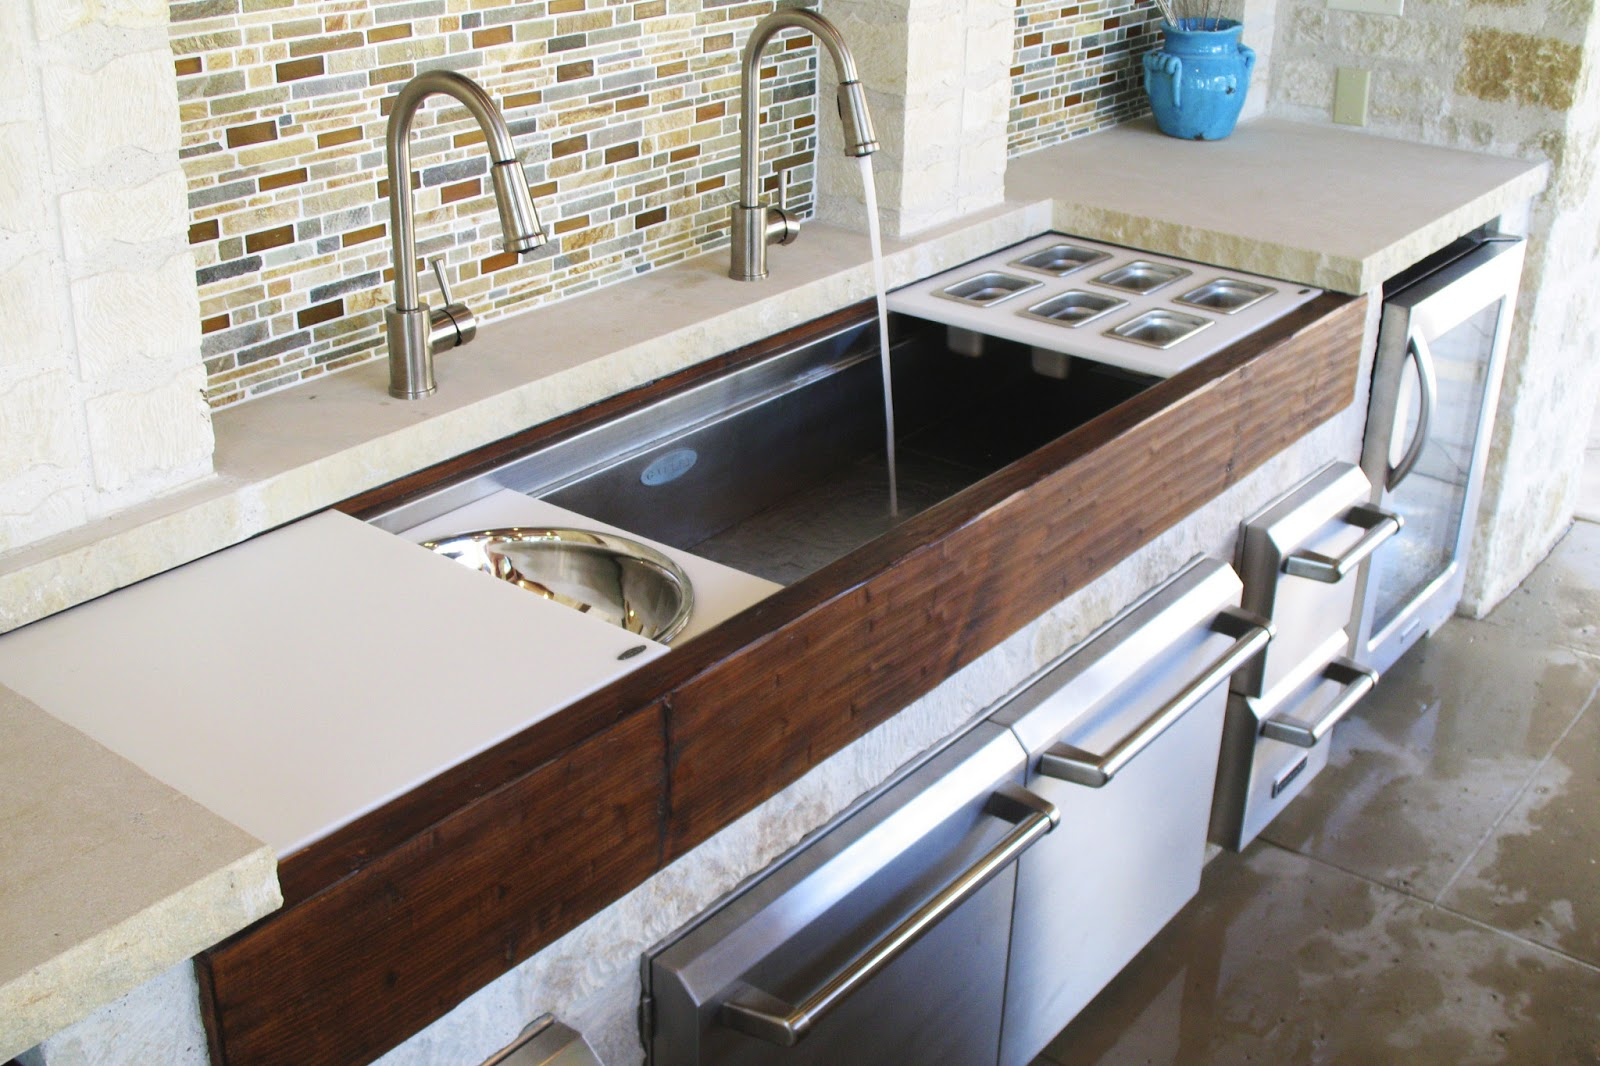 ... and Bath Specialist Sarasota, FL: Friday Kitchen Find Galley Sink